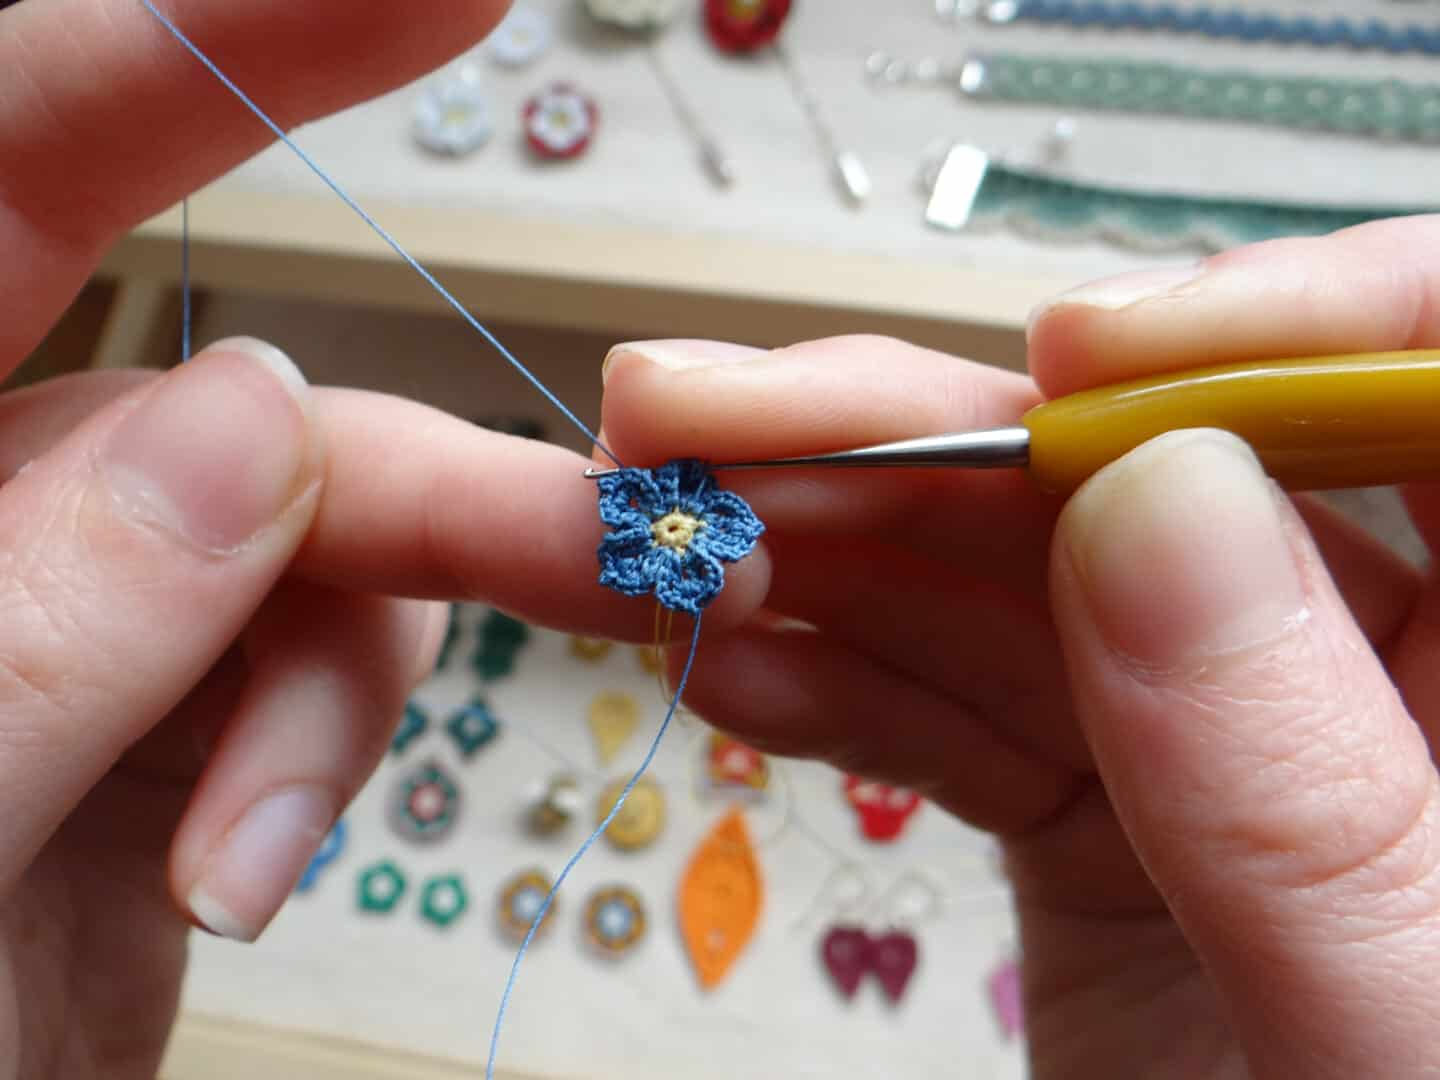 tiny micro crochet forget me not flower being crocheted with hook in hands